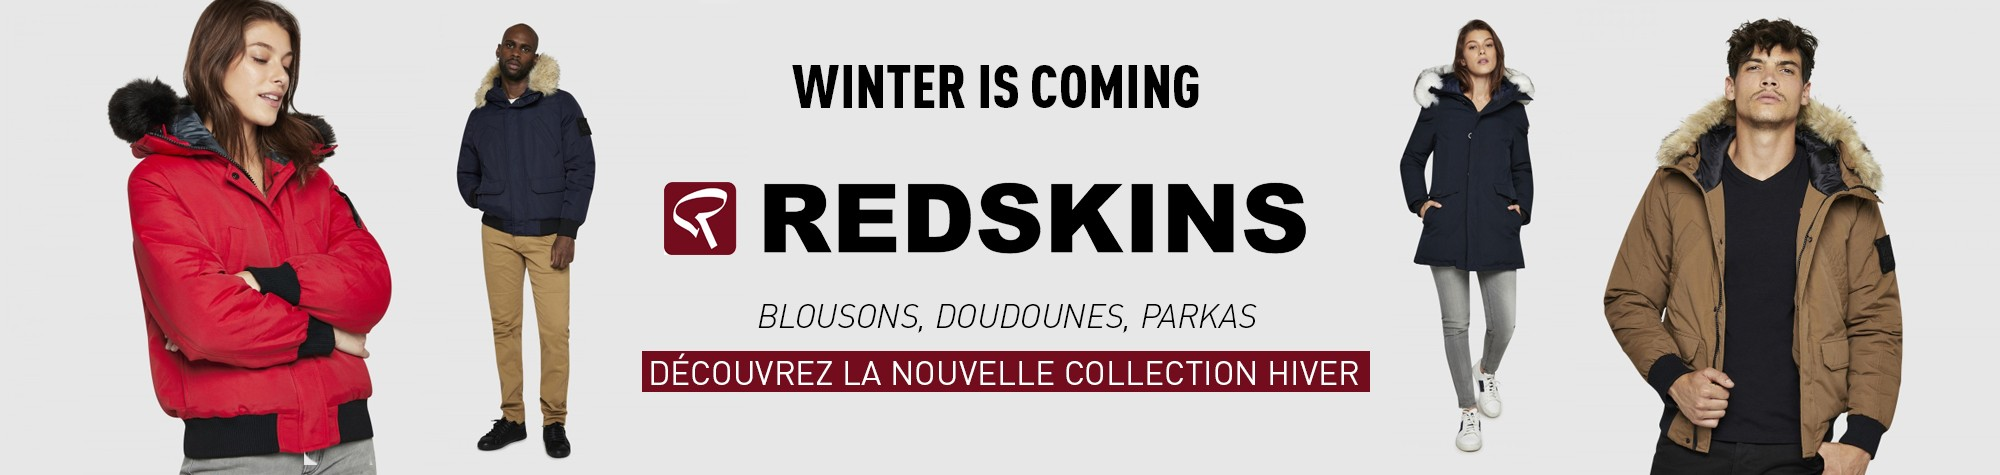 Nouvelle collection Hiver 2018 Redskins